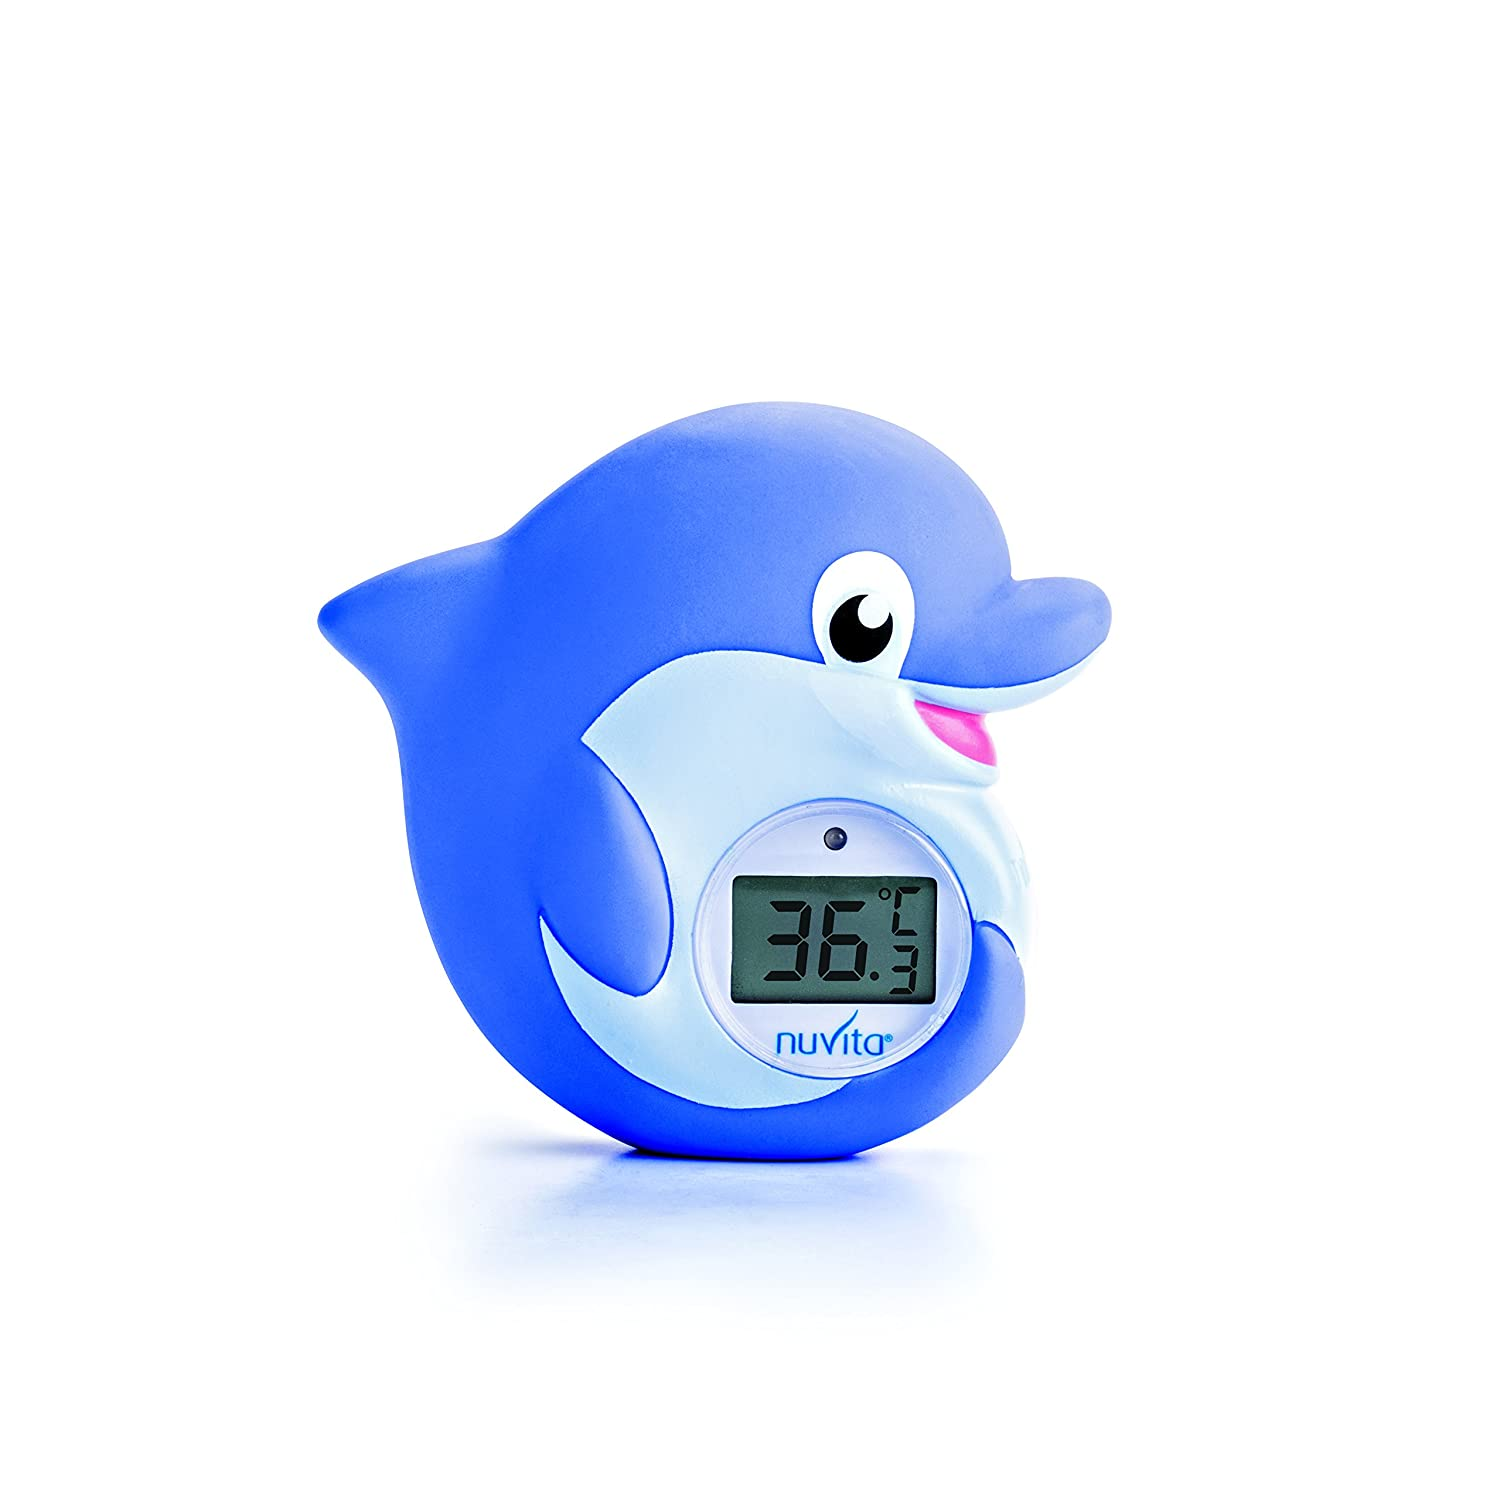 Bath and Room Thermometer 2 in 1 Nuvita 1006 – Digital Bath Thermometer – Baby Thermometer with Alarm LED Too Hot / Too Cold – Bath Toy in Dolphin Shape Certified and Safe (EN71 compliant)- EU Brand - Italian Design